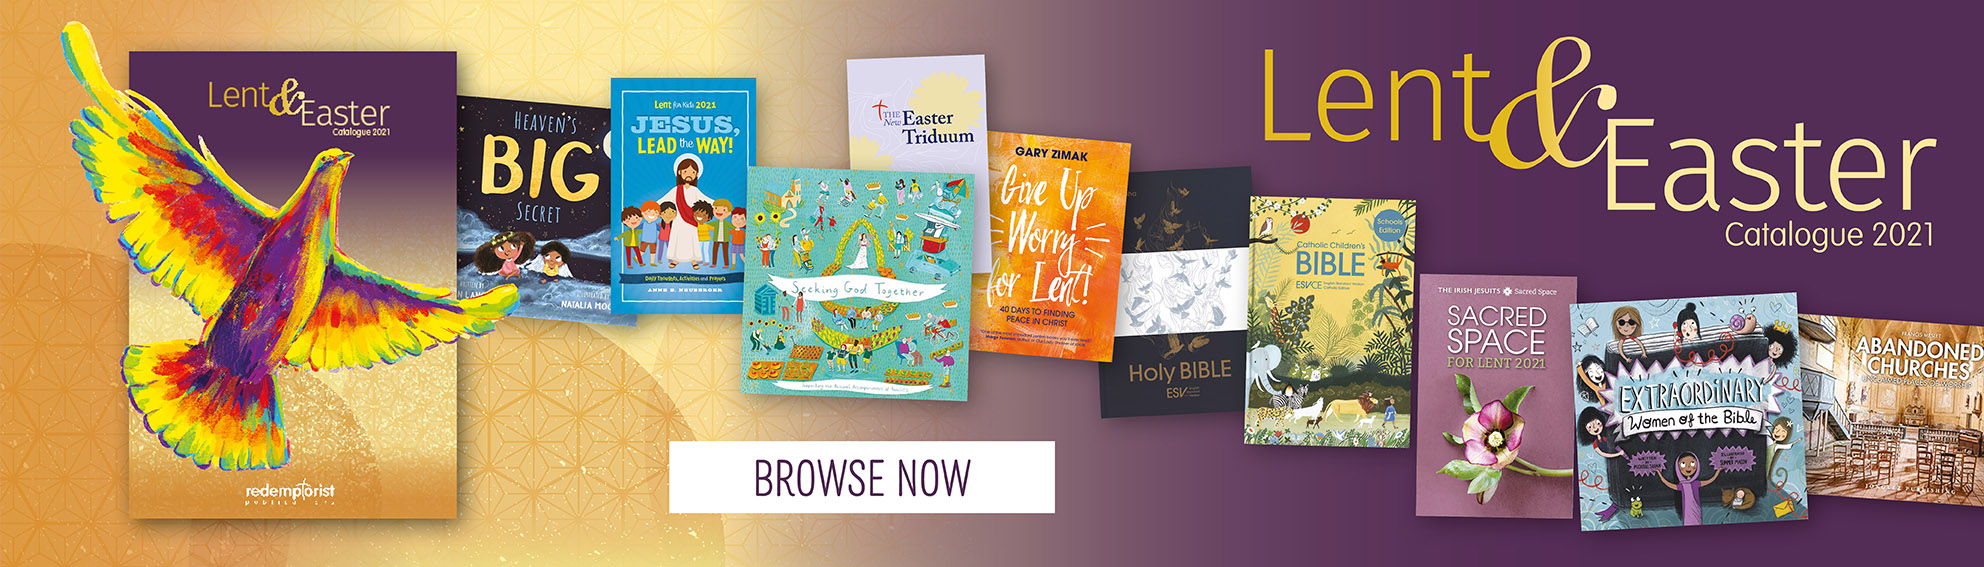 CATALOGUE - Lent and Easter 2020